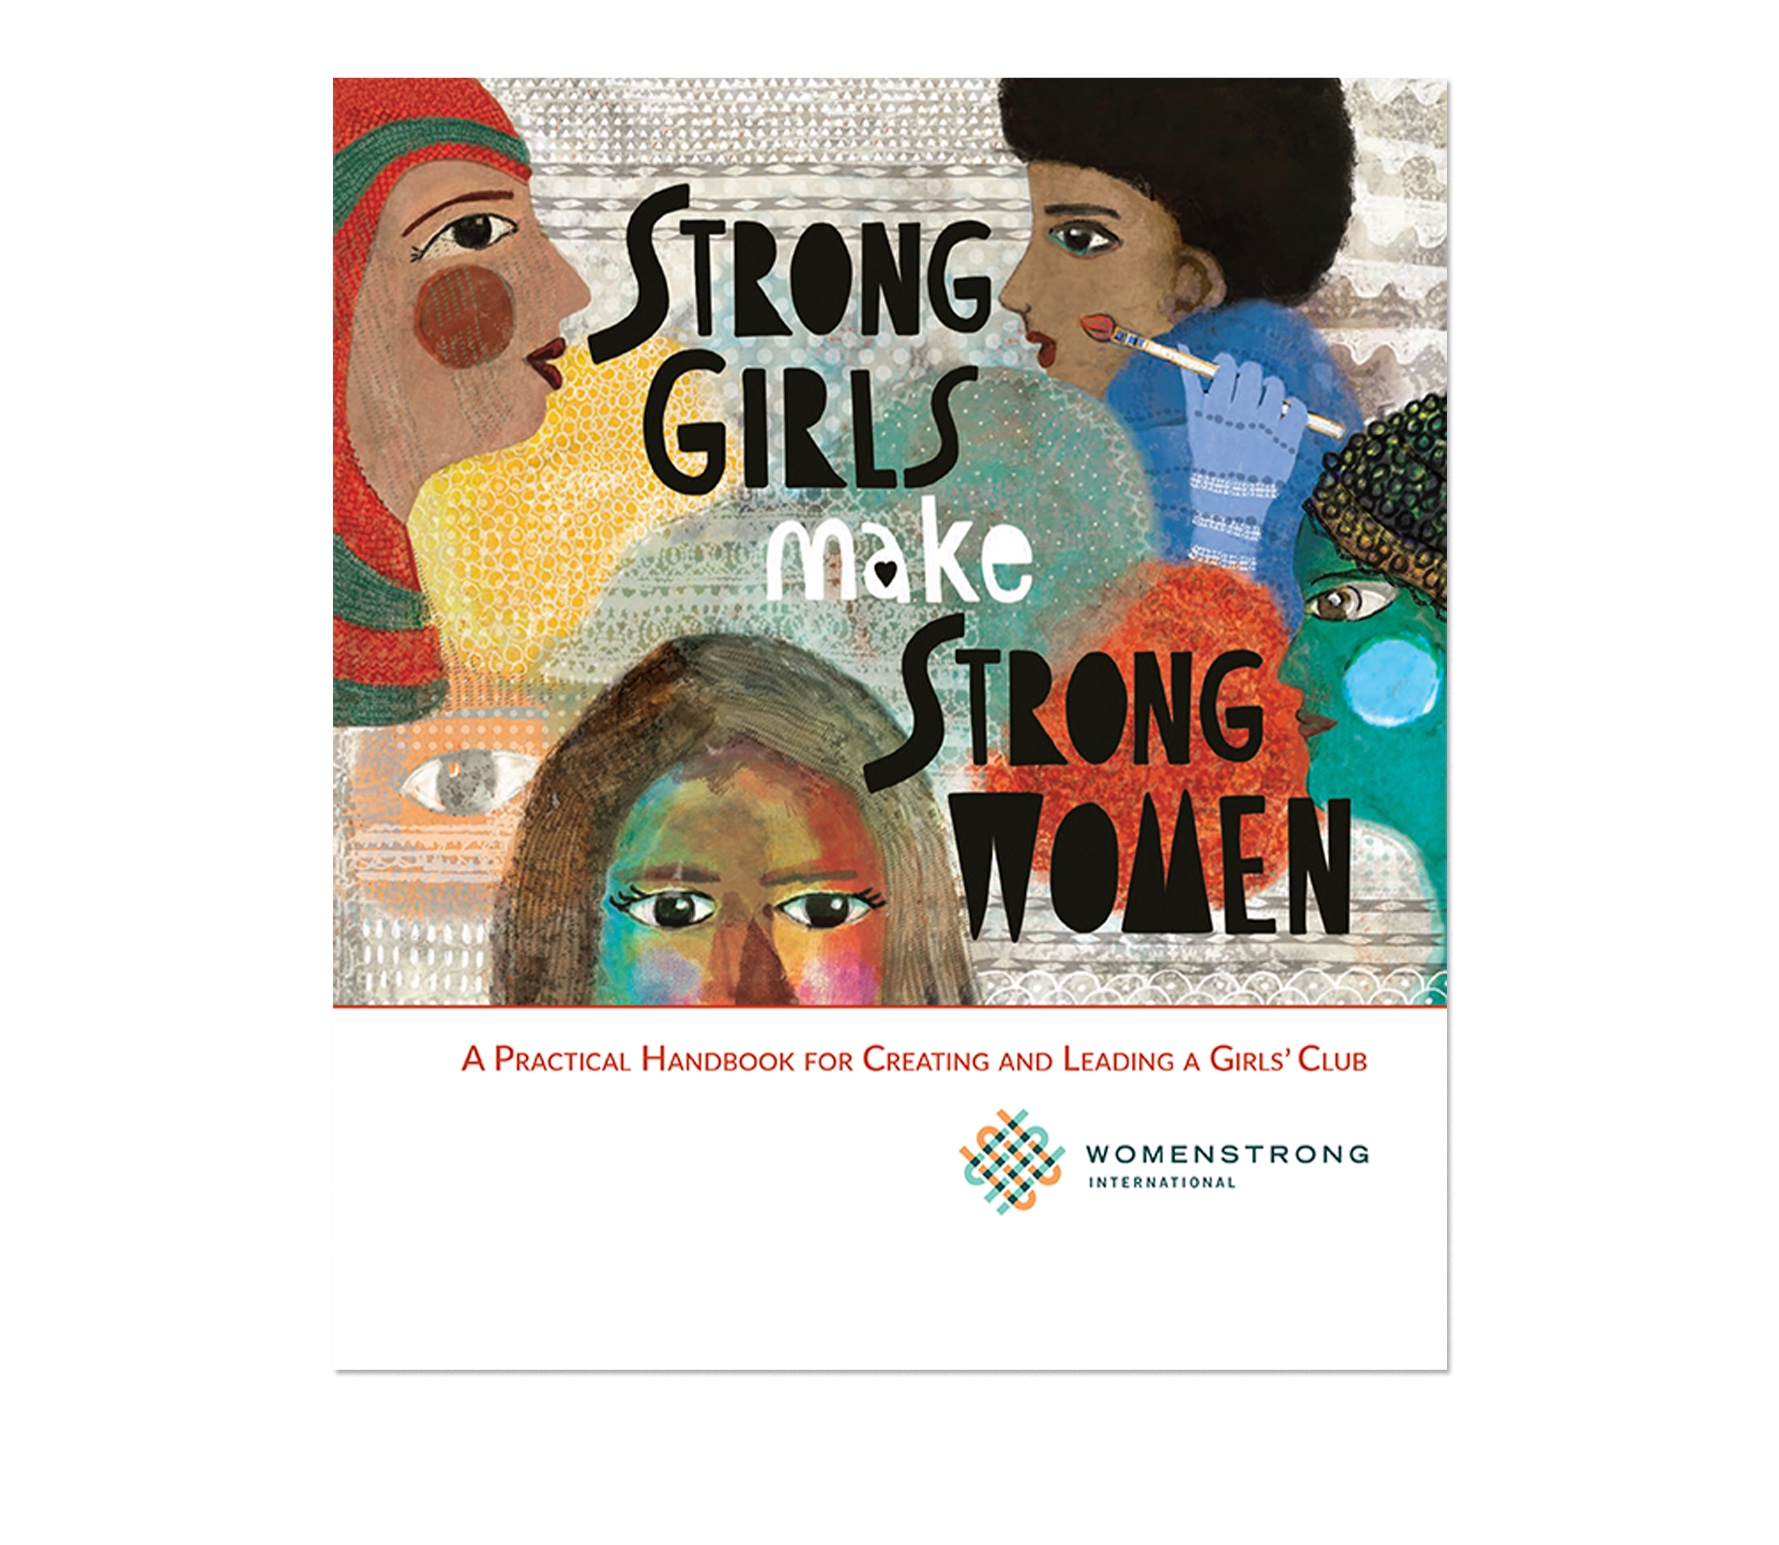 Illustration and jacket design by Karen Deans. ©WomenStrong International 2018 | All rights reserved.